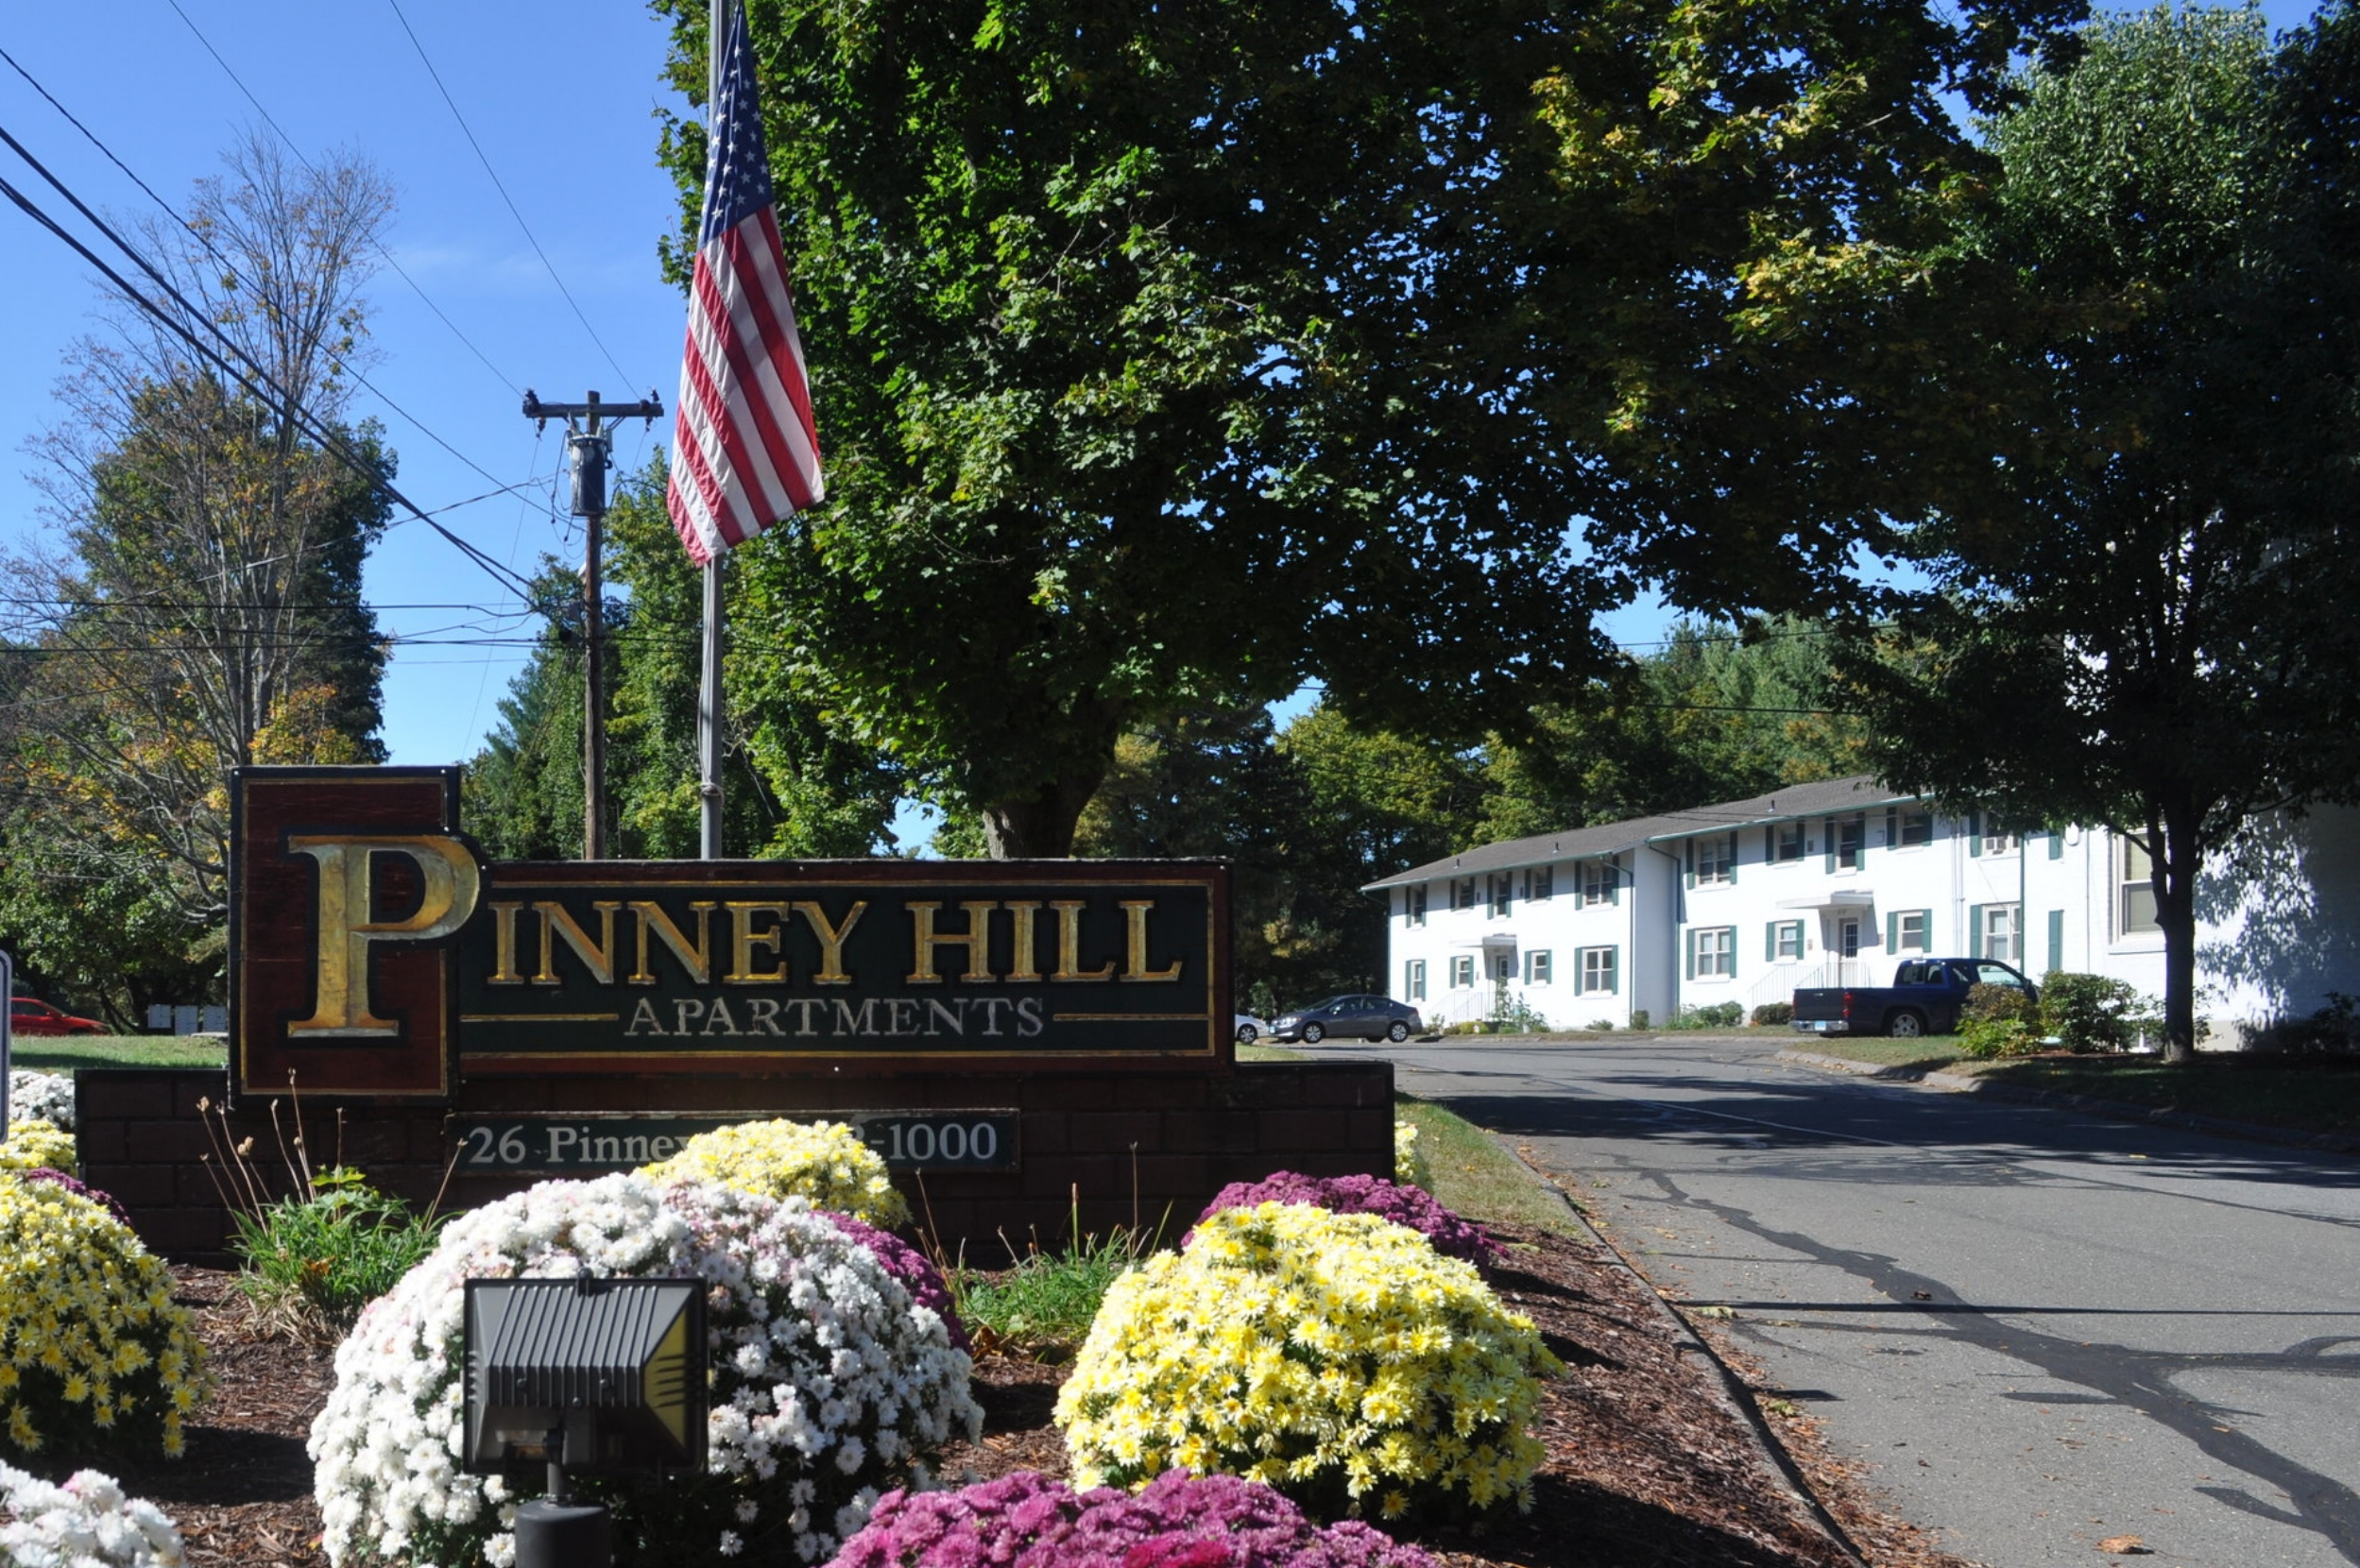 Pinney Hill property sign with flowers in front and an American Flag pole in back with a white building with green shutters to the side with trees all around.